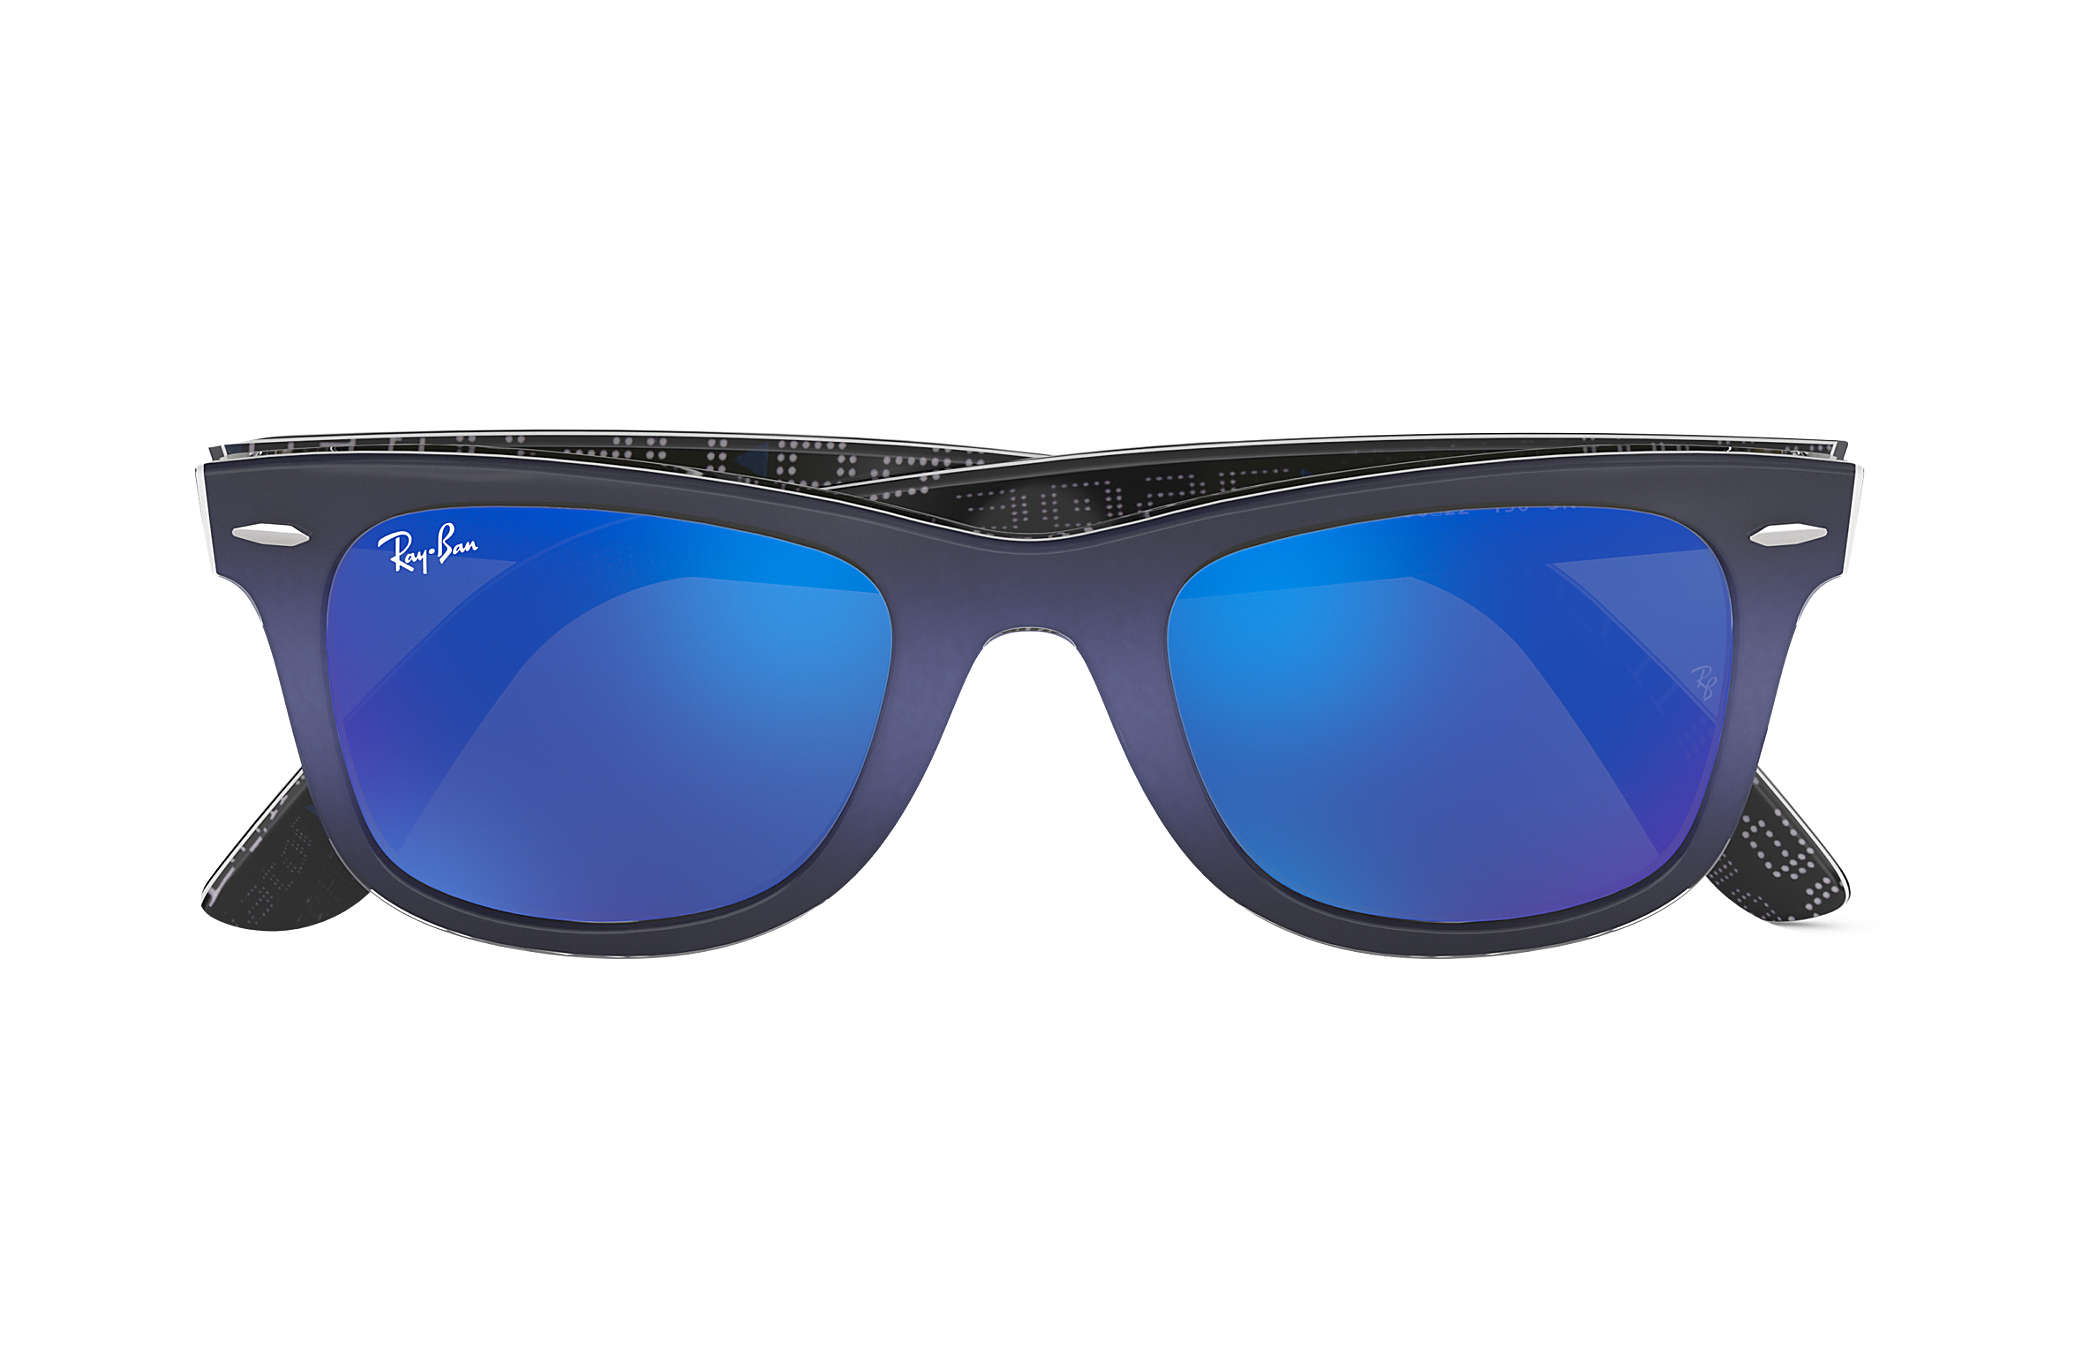 Ray-Ban Original Wayfarer Pixel RB2140 Blue - Acetate - Blue Lenses ... 942d5bc7aac98